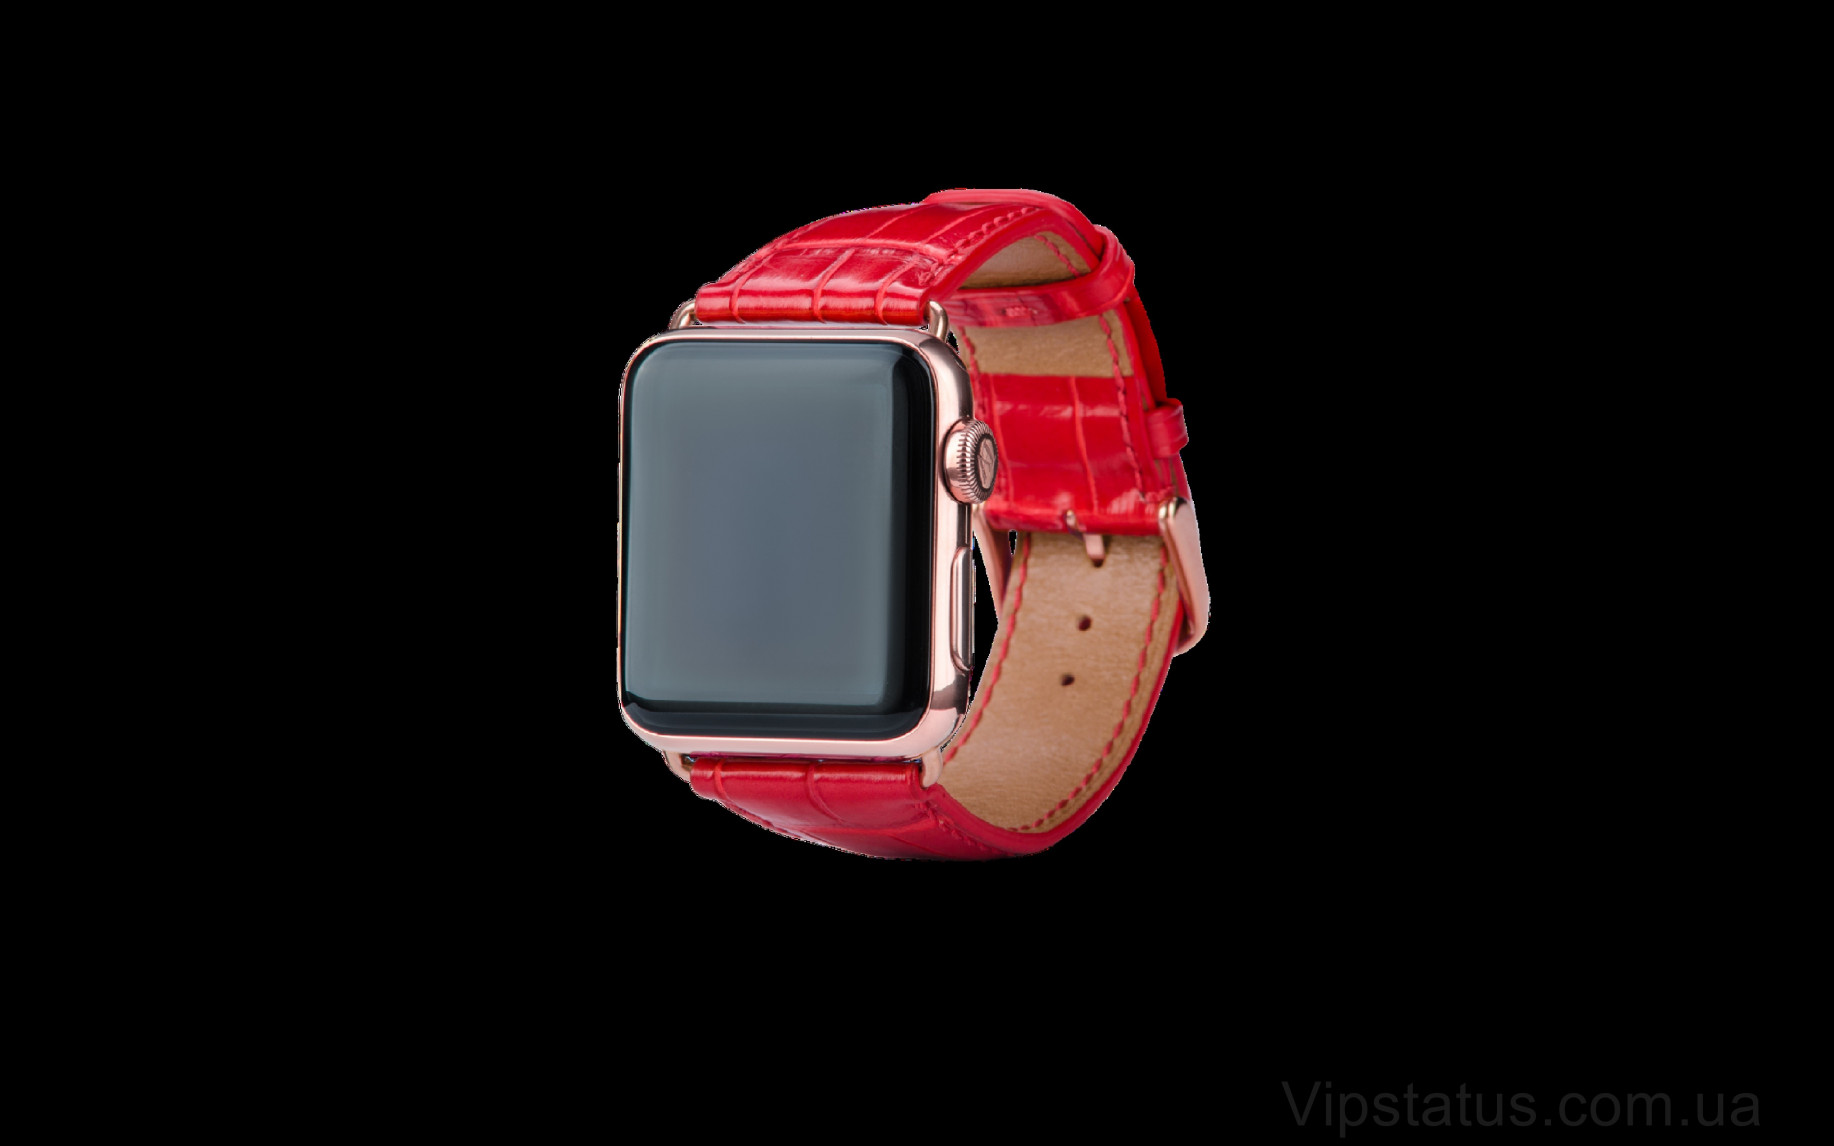 Elite Pink Princess Apple Watch 6 Pink Princess Apple Watch 6 image 1